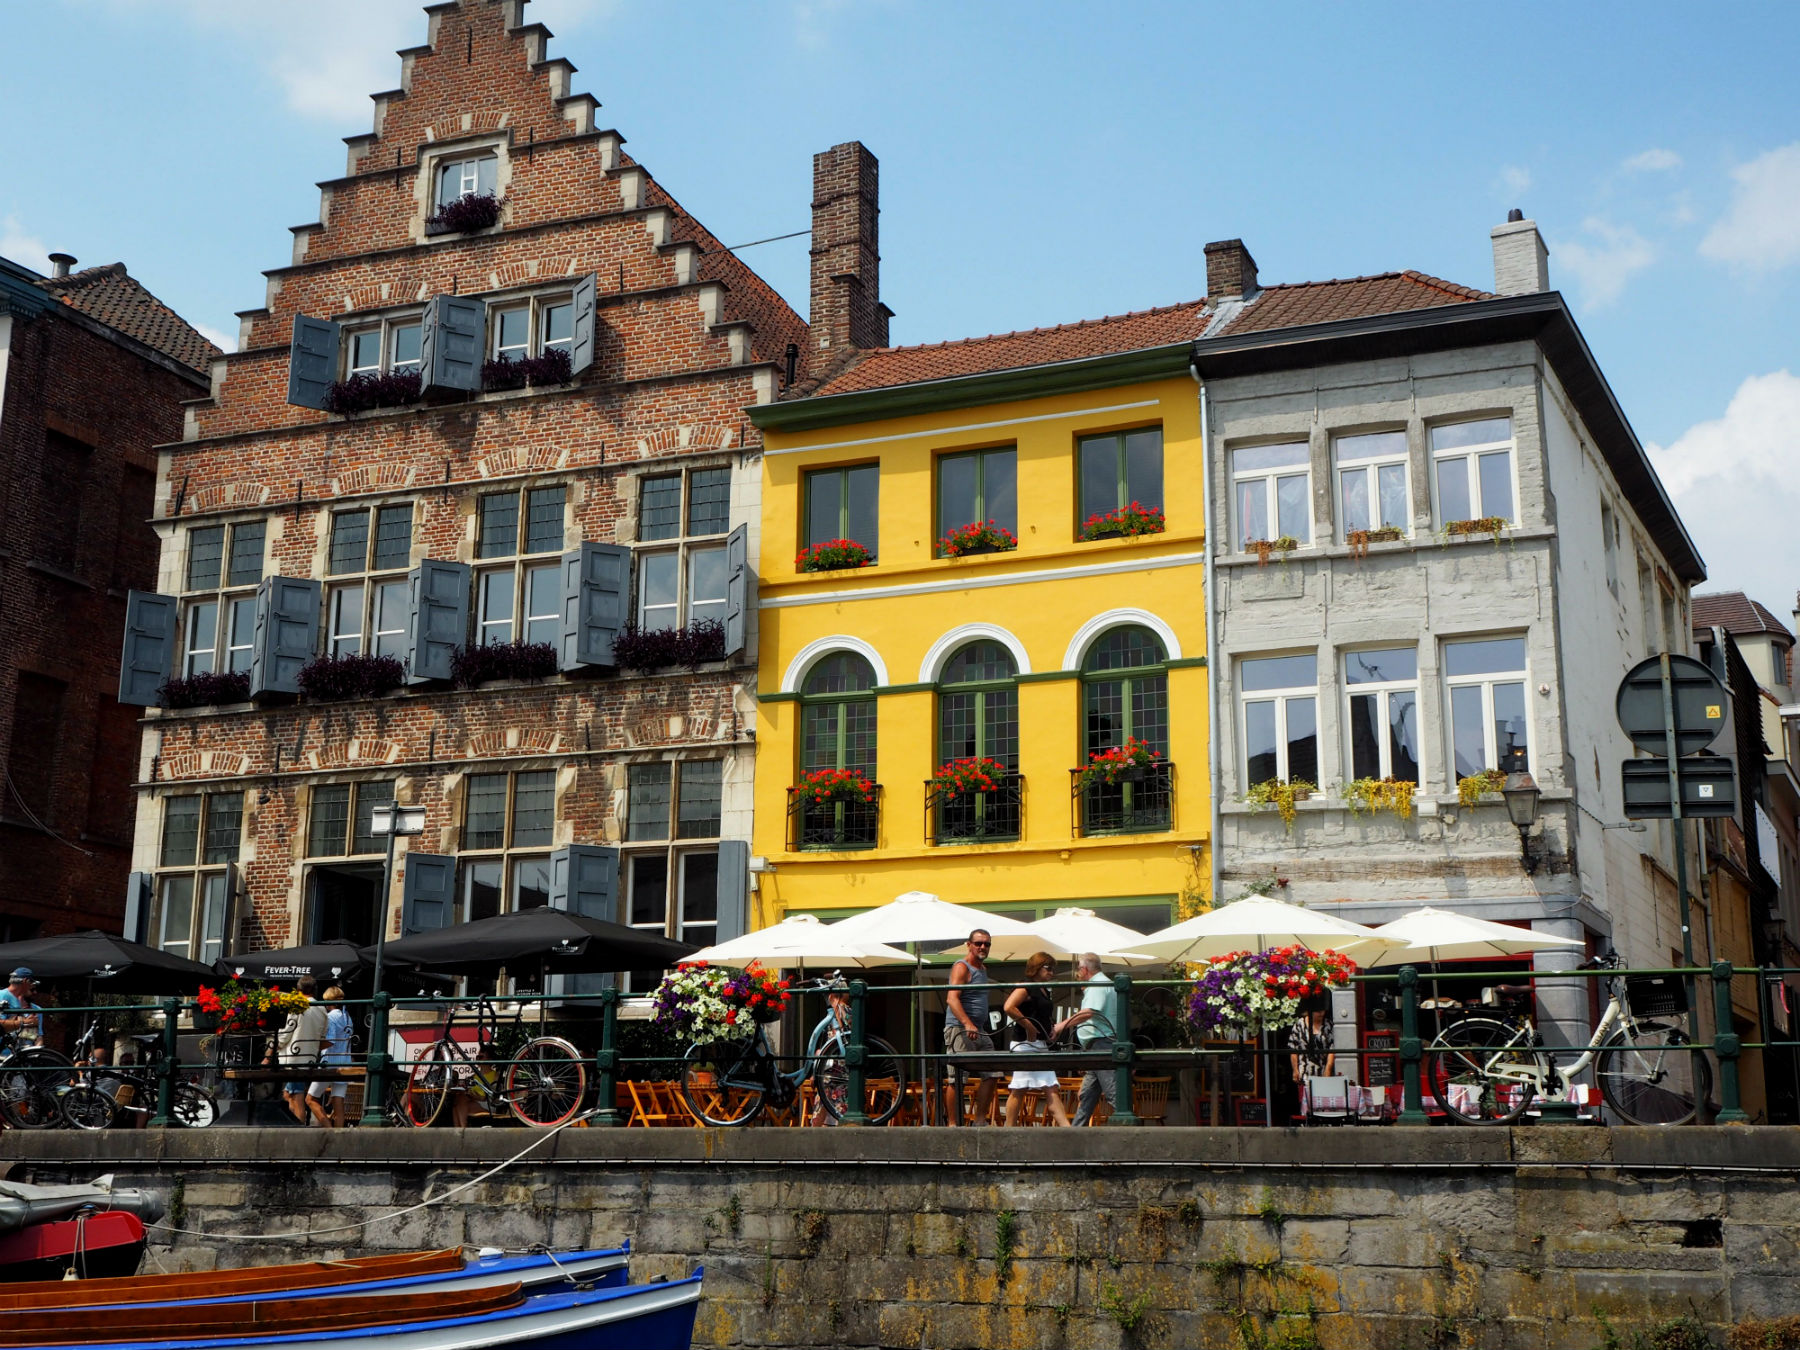 Beautiful buildings in Ghent | Ghent travel | Ghent itinerary | Things to do in Ghent | What to see in Ghent | Ghent sights | Ghent Belgium |